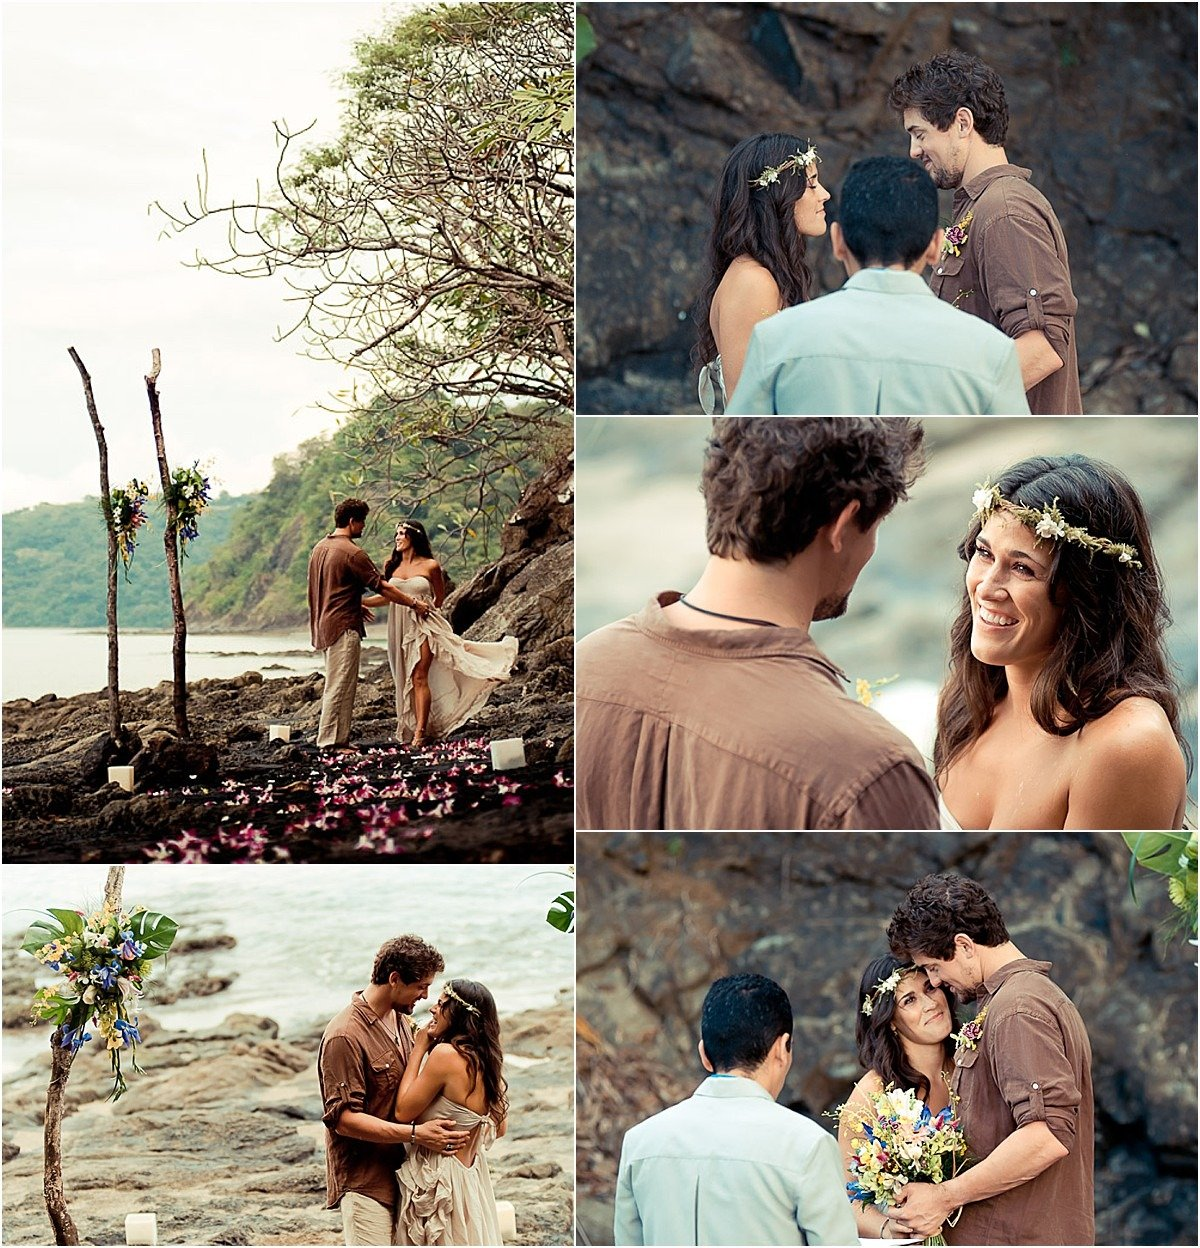 ceremony planners to elope in Costa Rica